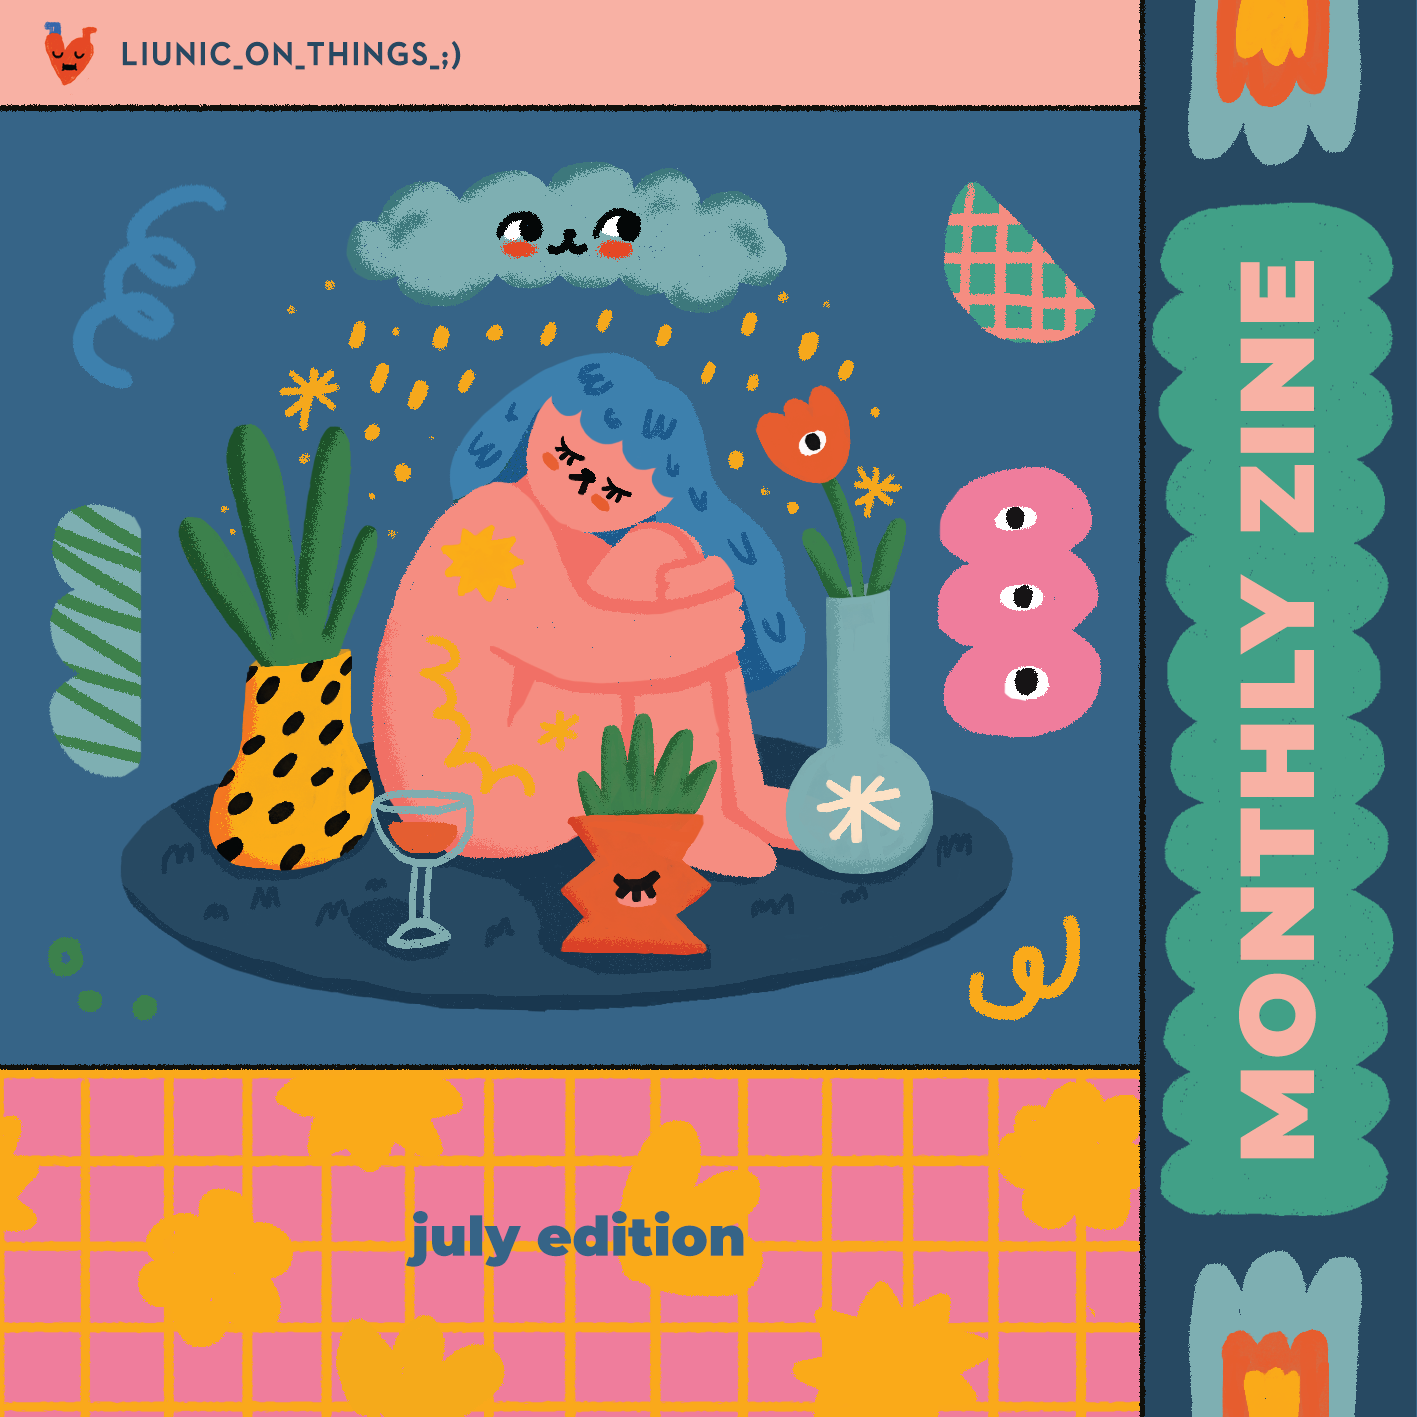 Liunic on Things Monthly Zine: July Edition!